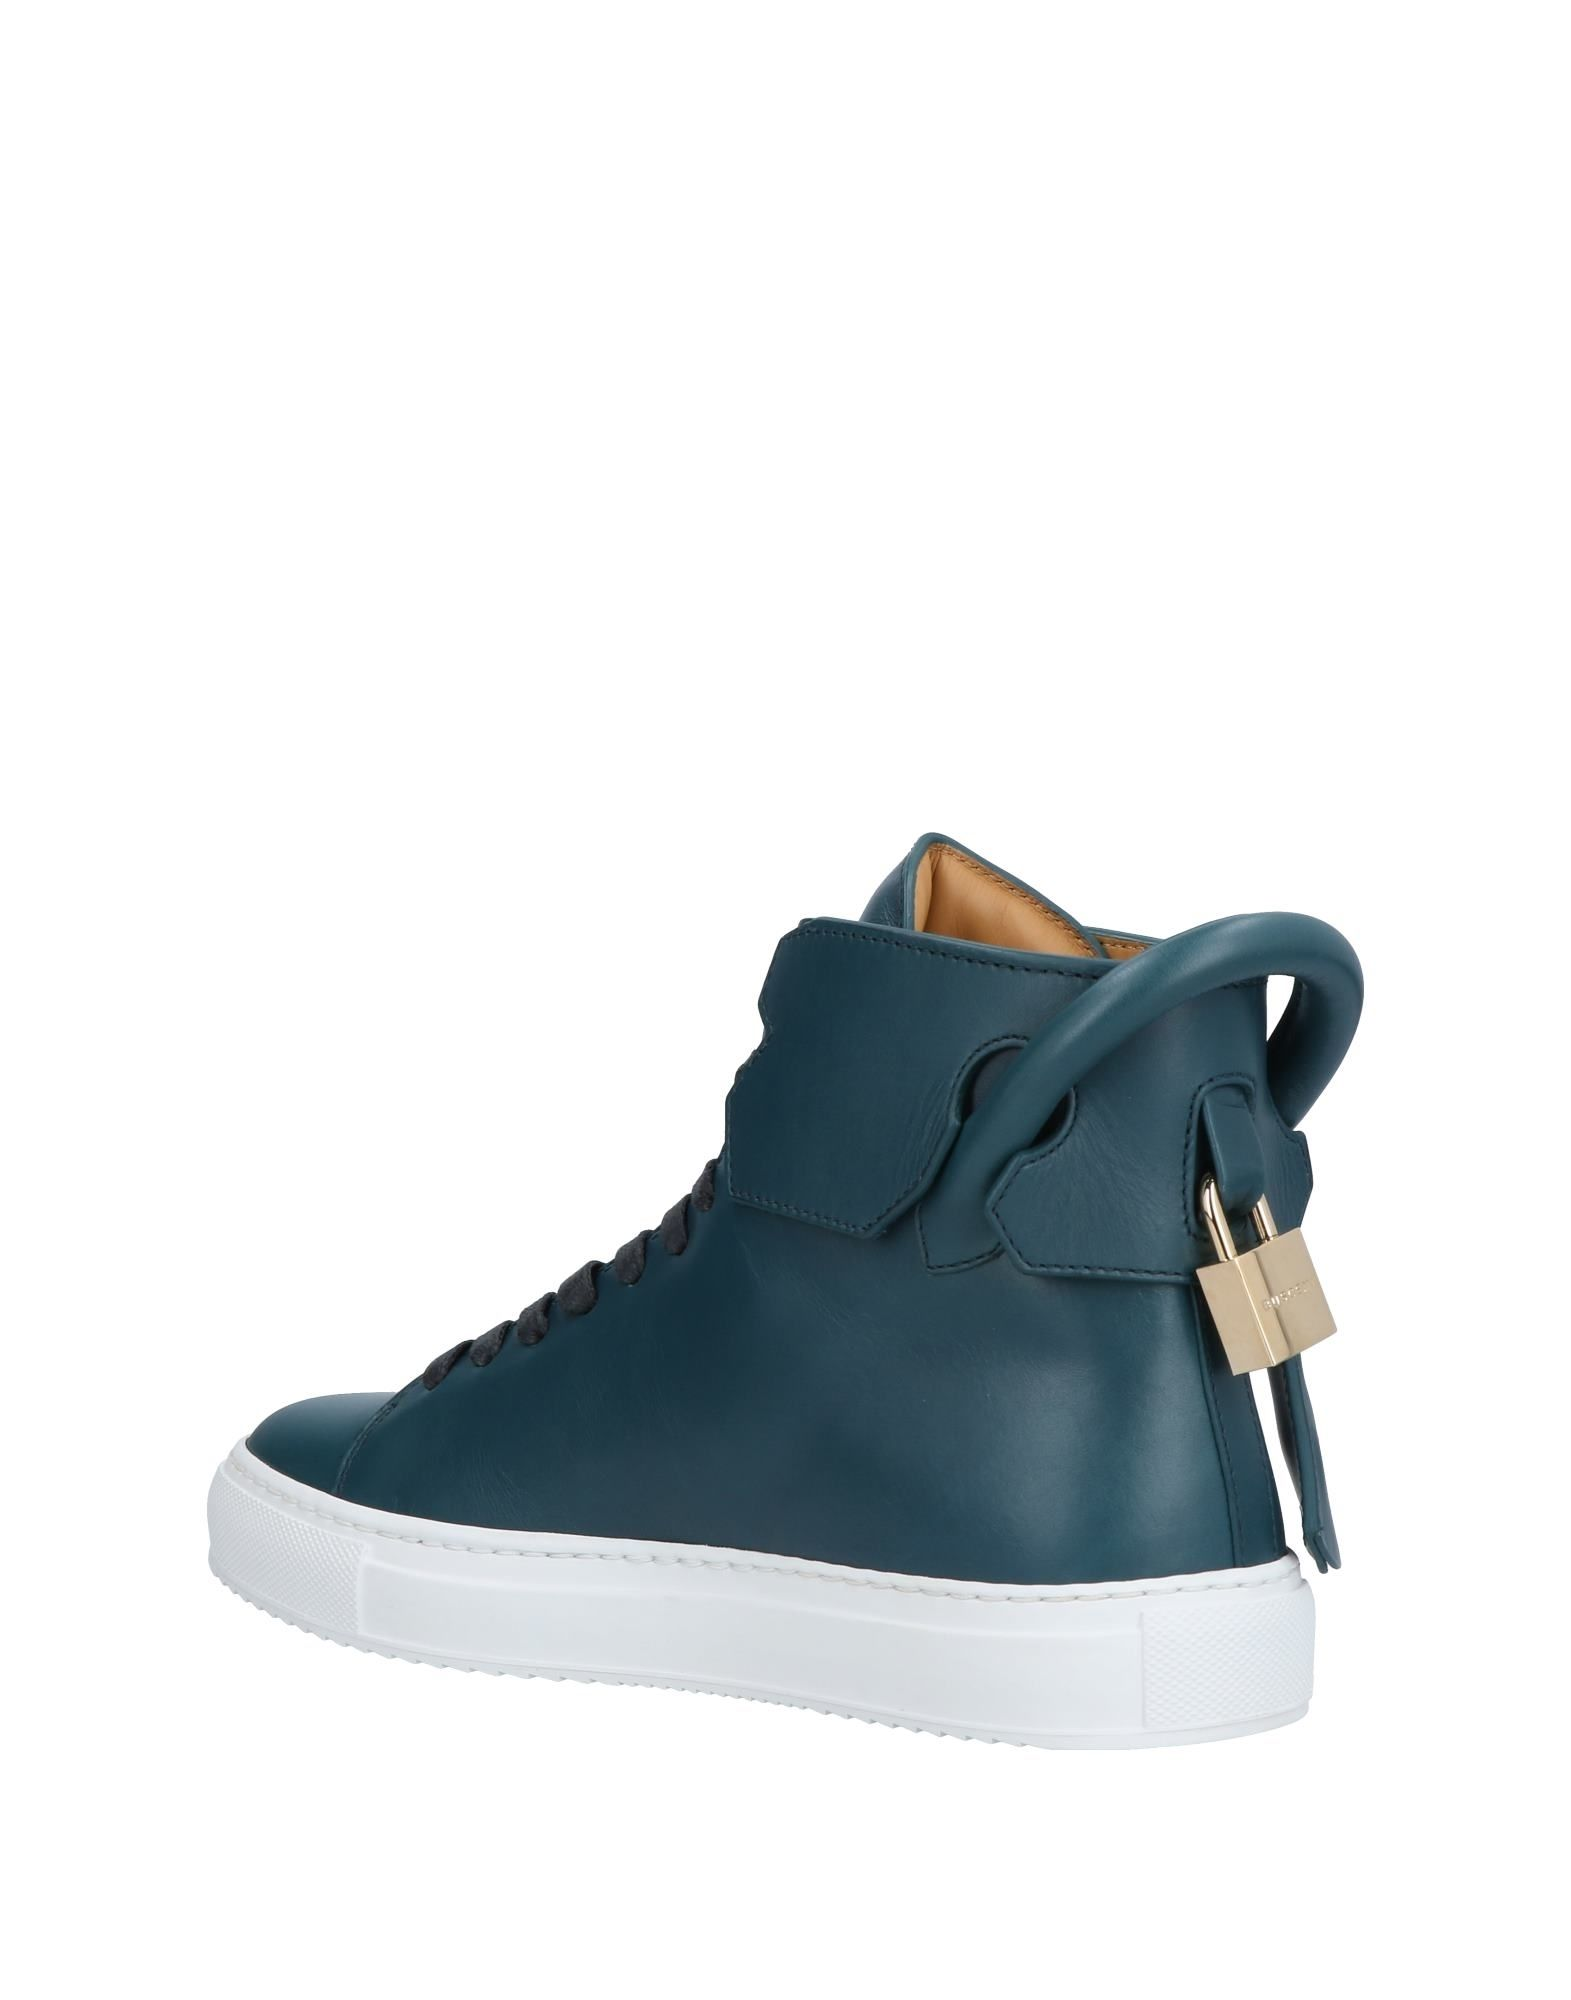 Buscemi Sneakers - Women Buscemi Sneakers online on  United United United Kingdom - 11473076DW 1f87ab